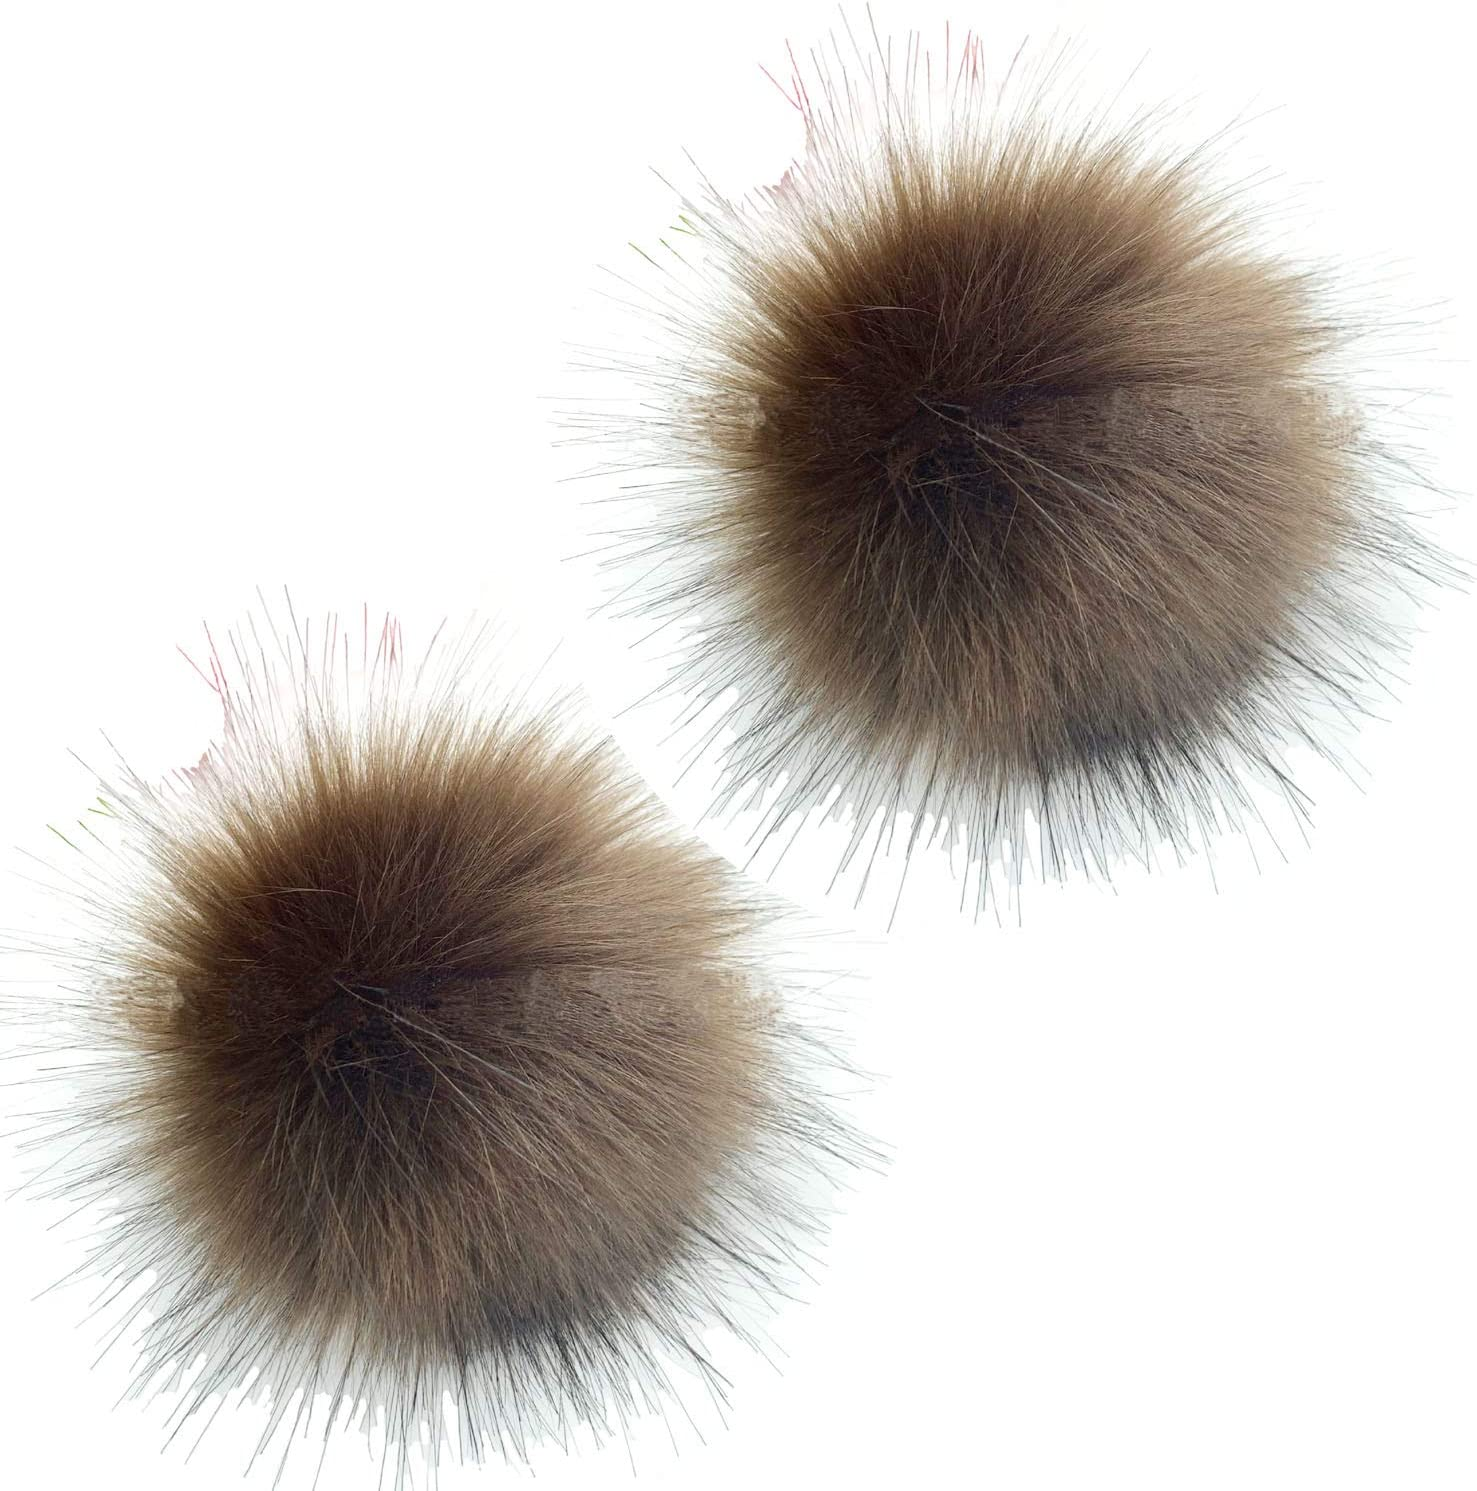 Faux Fur Pom Pom Balls DIY Faux Fox Fur Fluffy Pom Pom with Press Button for Hats Scarves Gloves Bags Accessories 2 Pieces Black 4